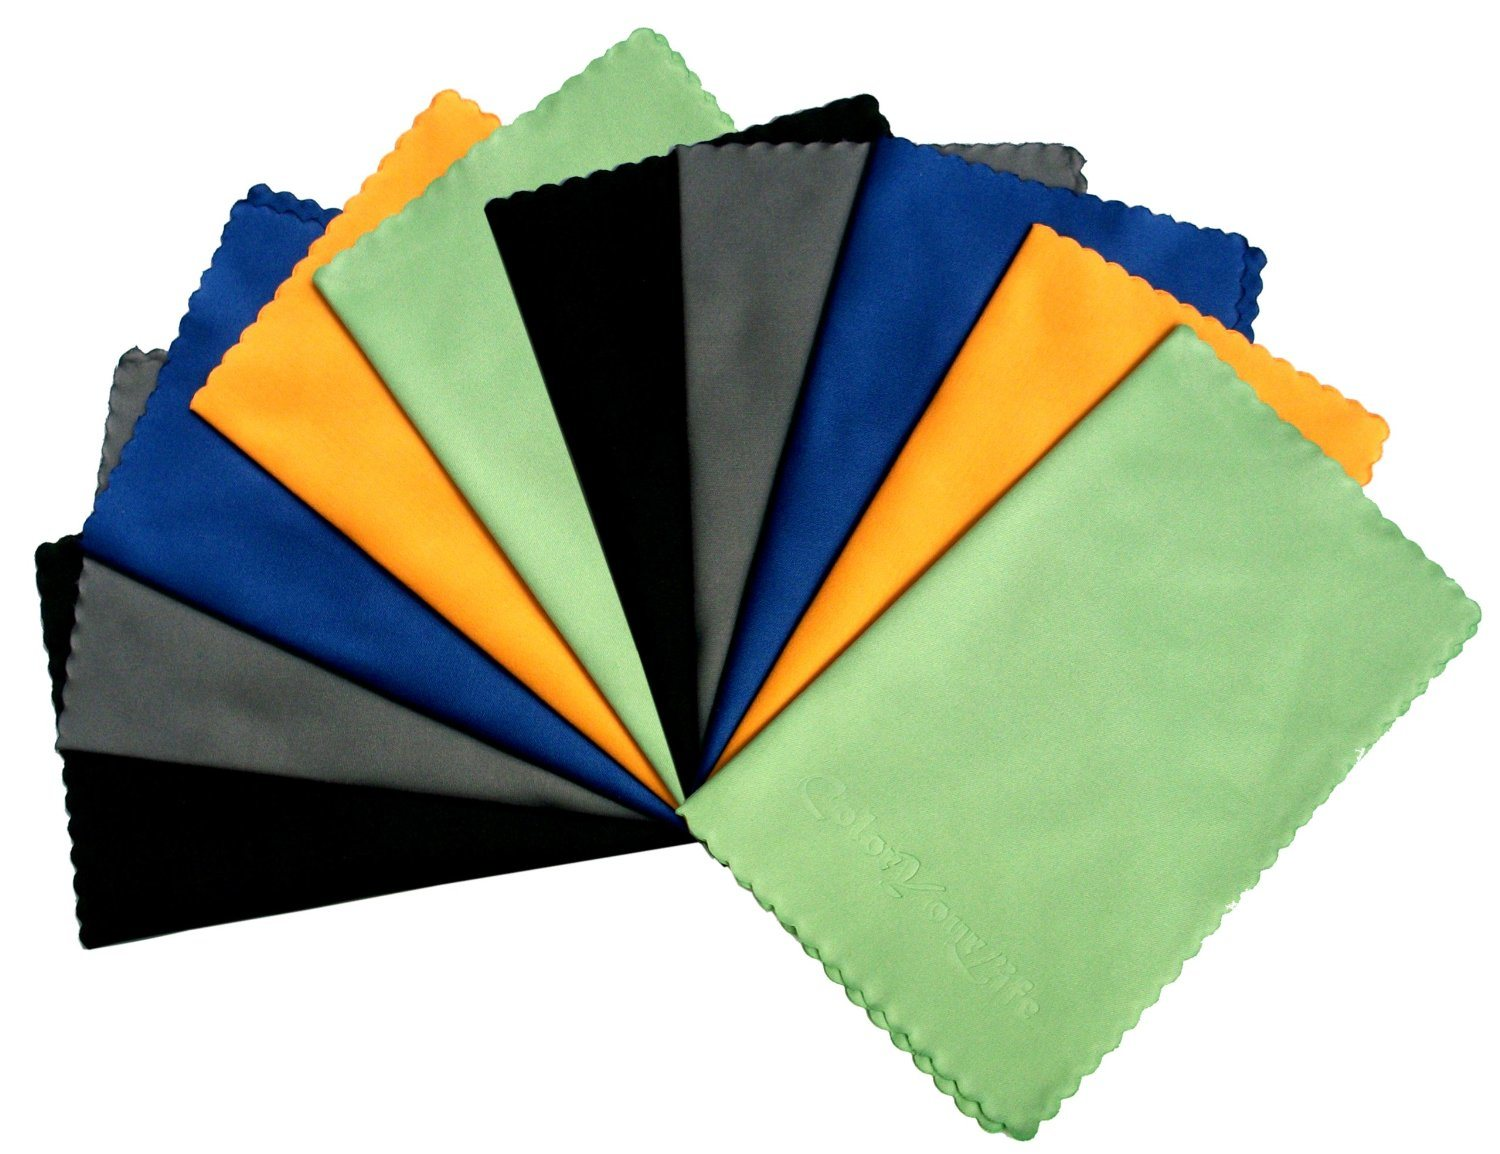 2014 New Microfiber Glass Cleaning Cloths for Apple iPad, Tablets, Lenses, LCD Monitor, TV, Camera, Glasses, Optics etc